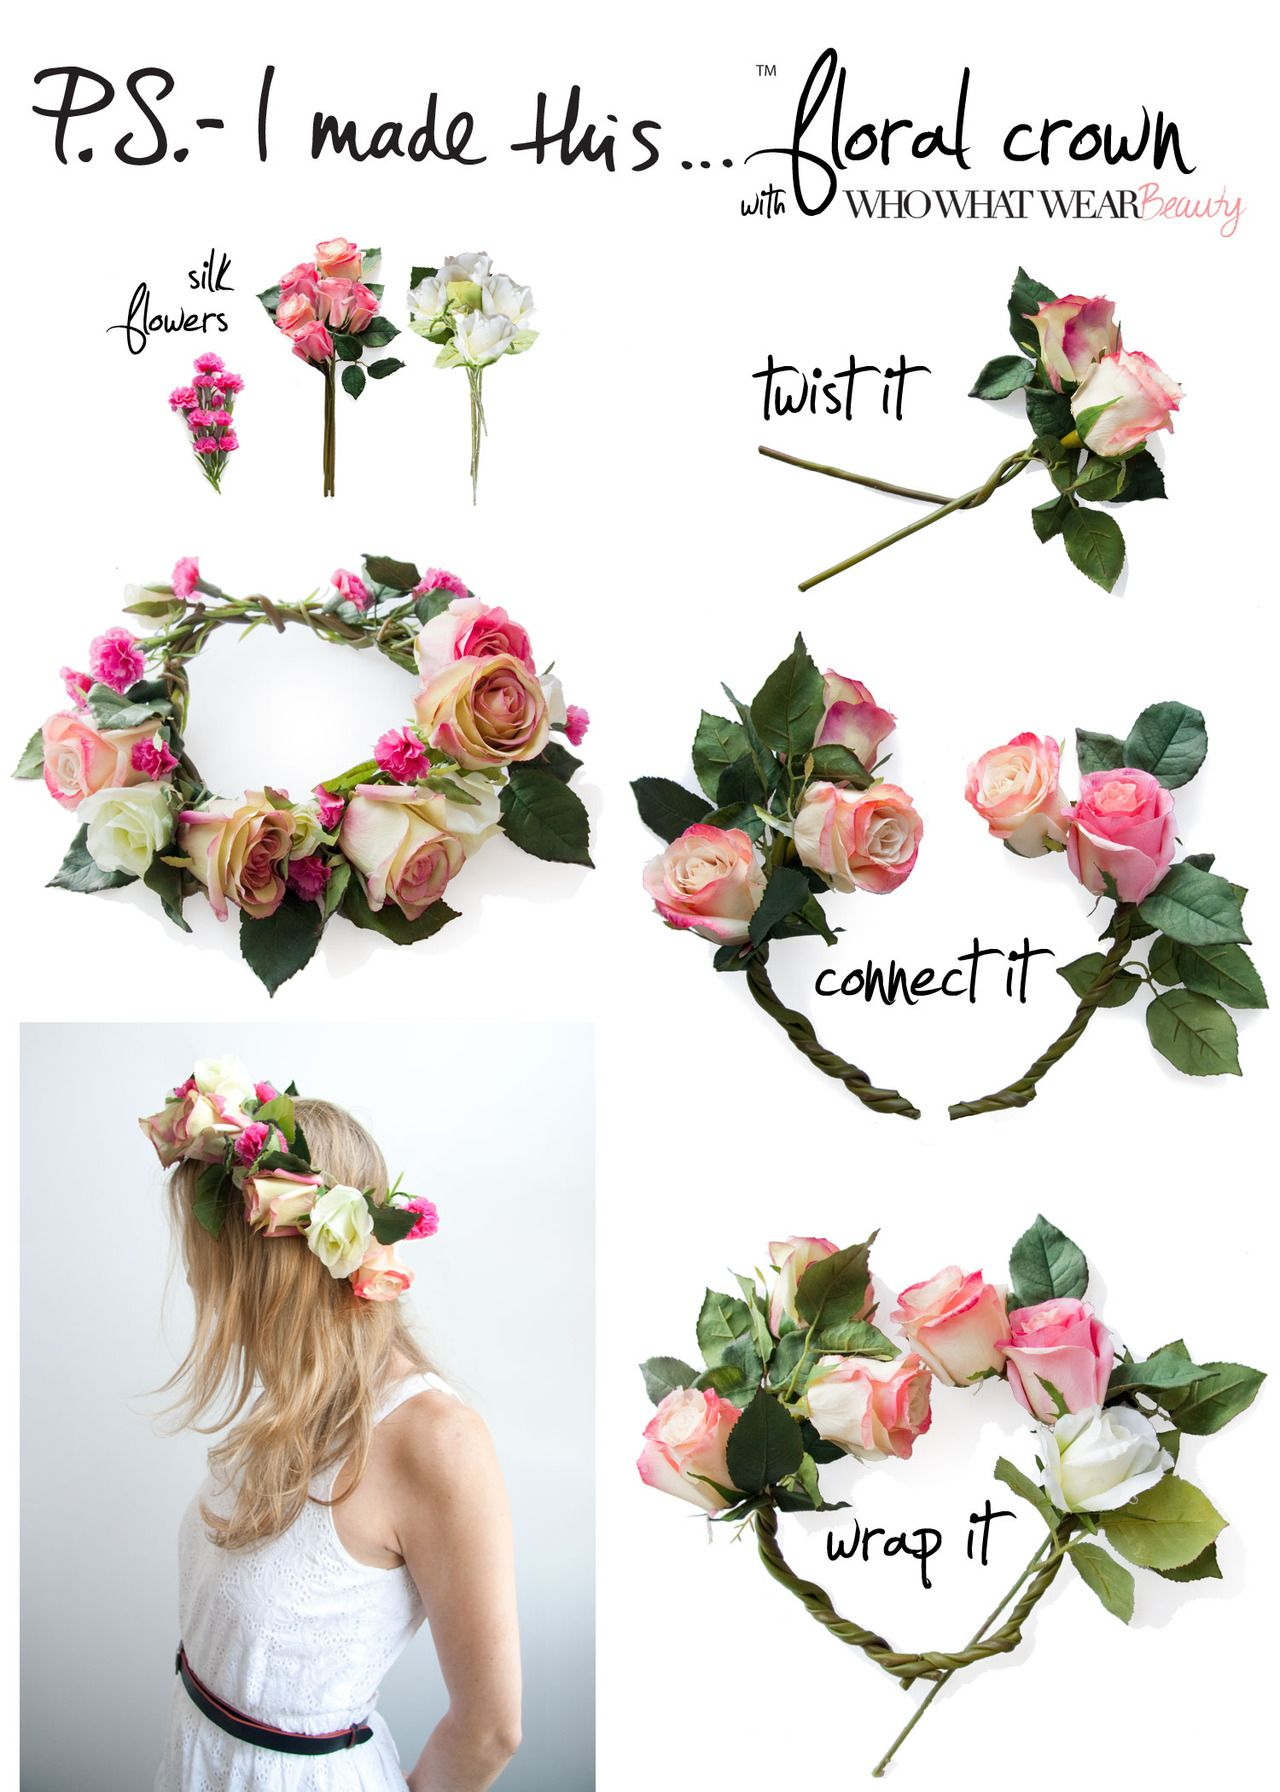 Style loves diy flower crown pinterest floral crown crown and calling all flower girls and princesses easy diy flower crown ta heres an idea add flowing tulle or multiple ribbon strands to the back for an izmirmasajfo